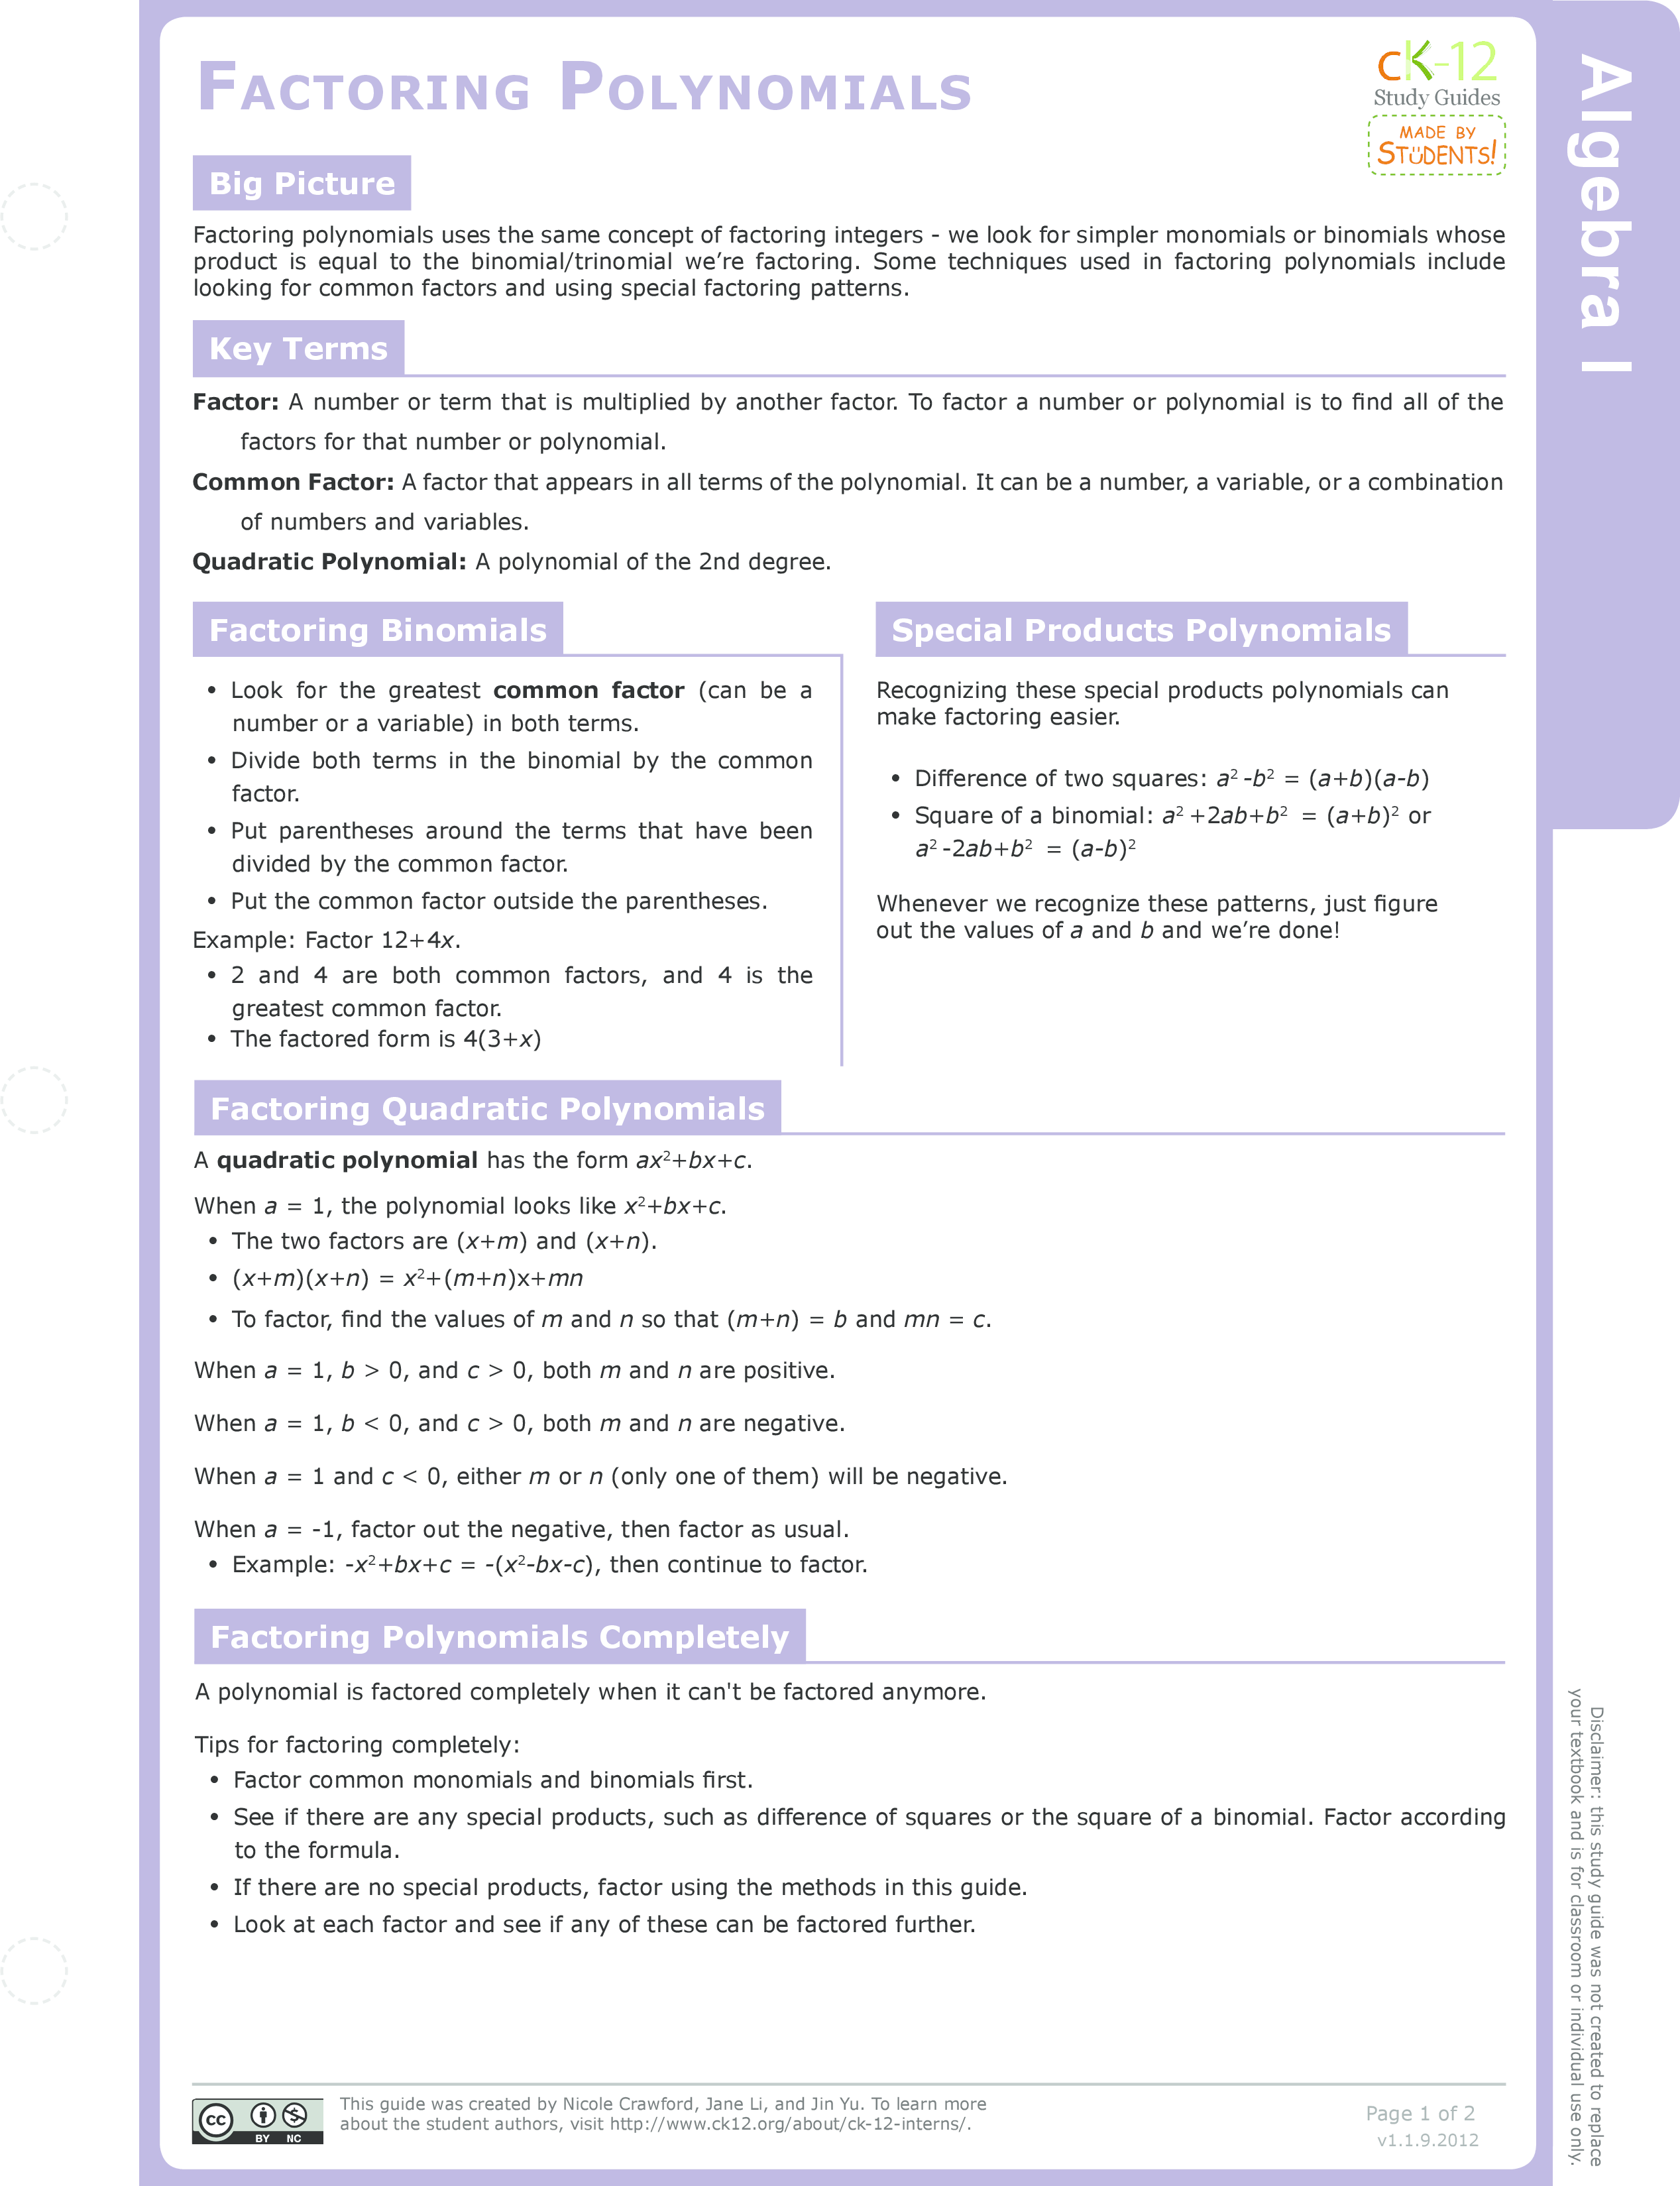 Special Products of Polynomials Study Aids Algebra – Factoring Ax2 Bx C Worksheet Answers